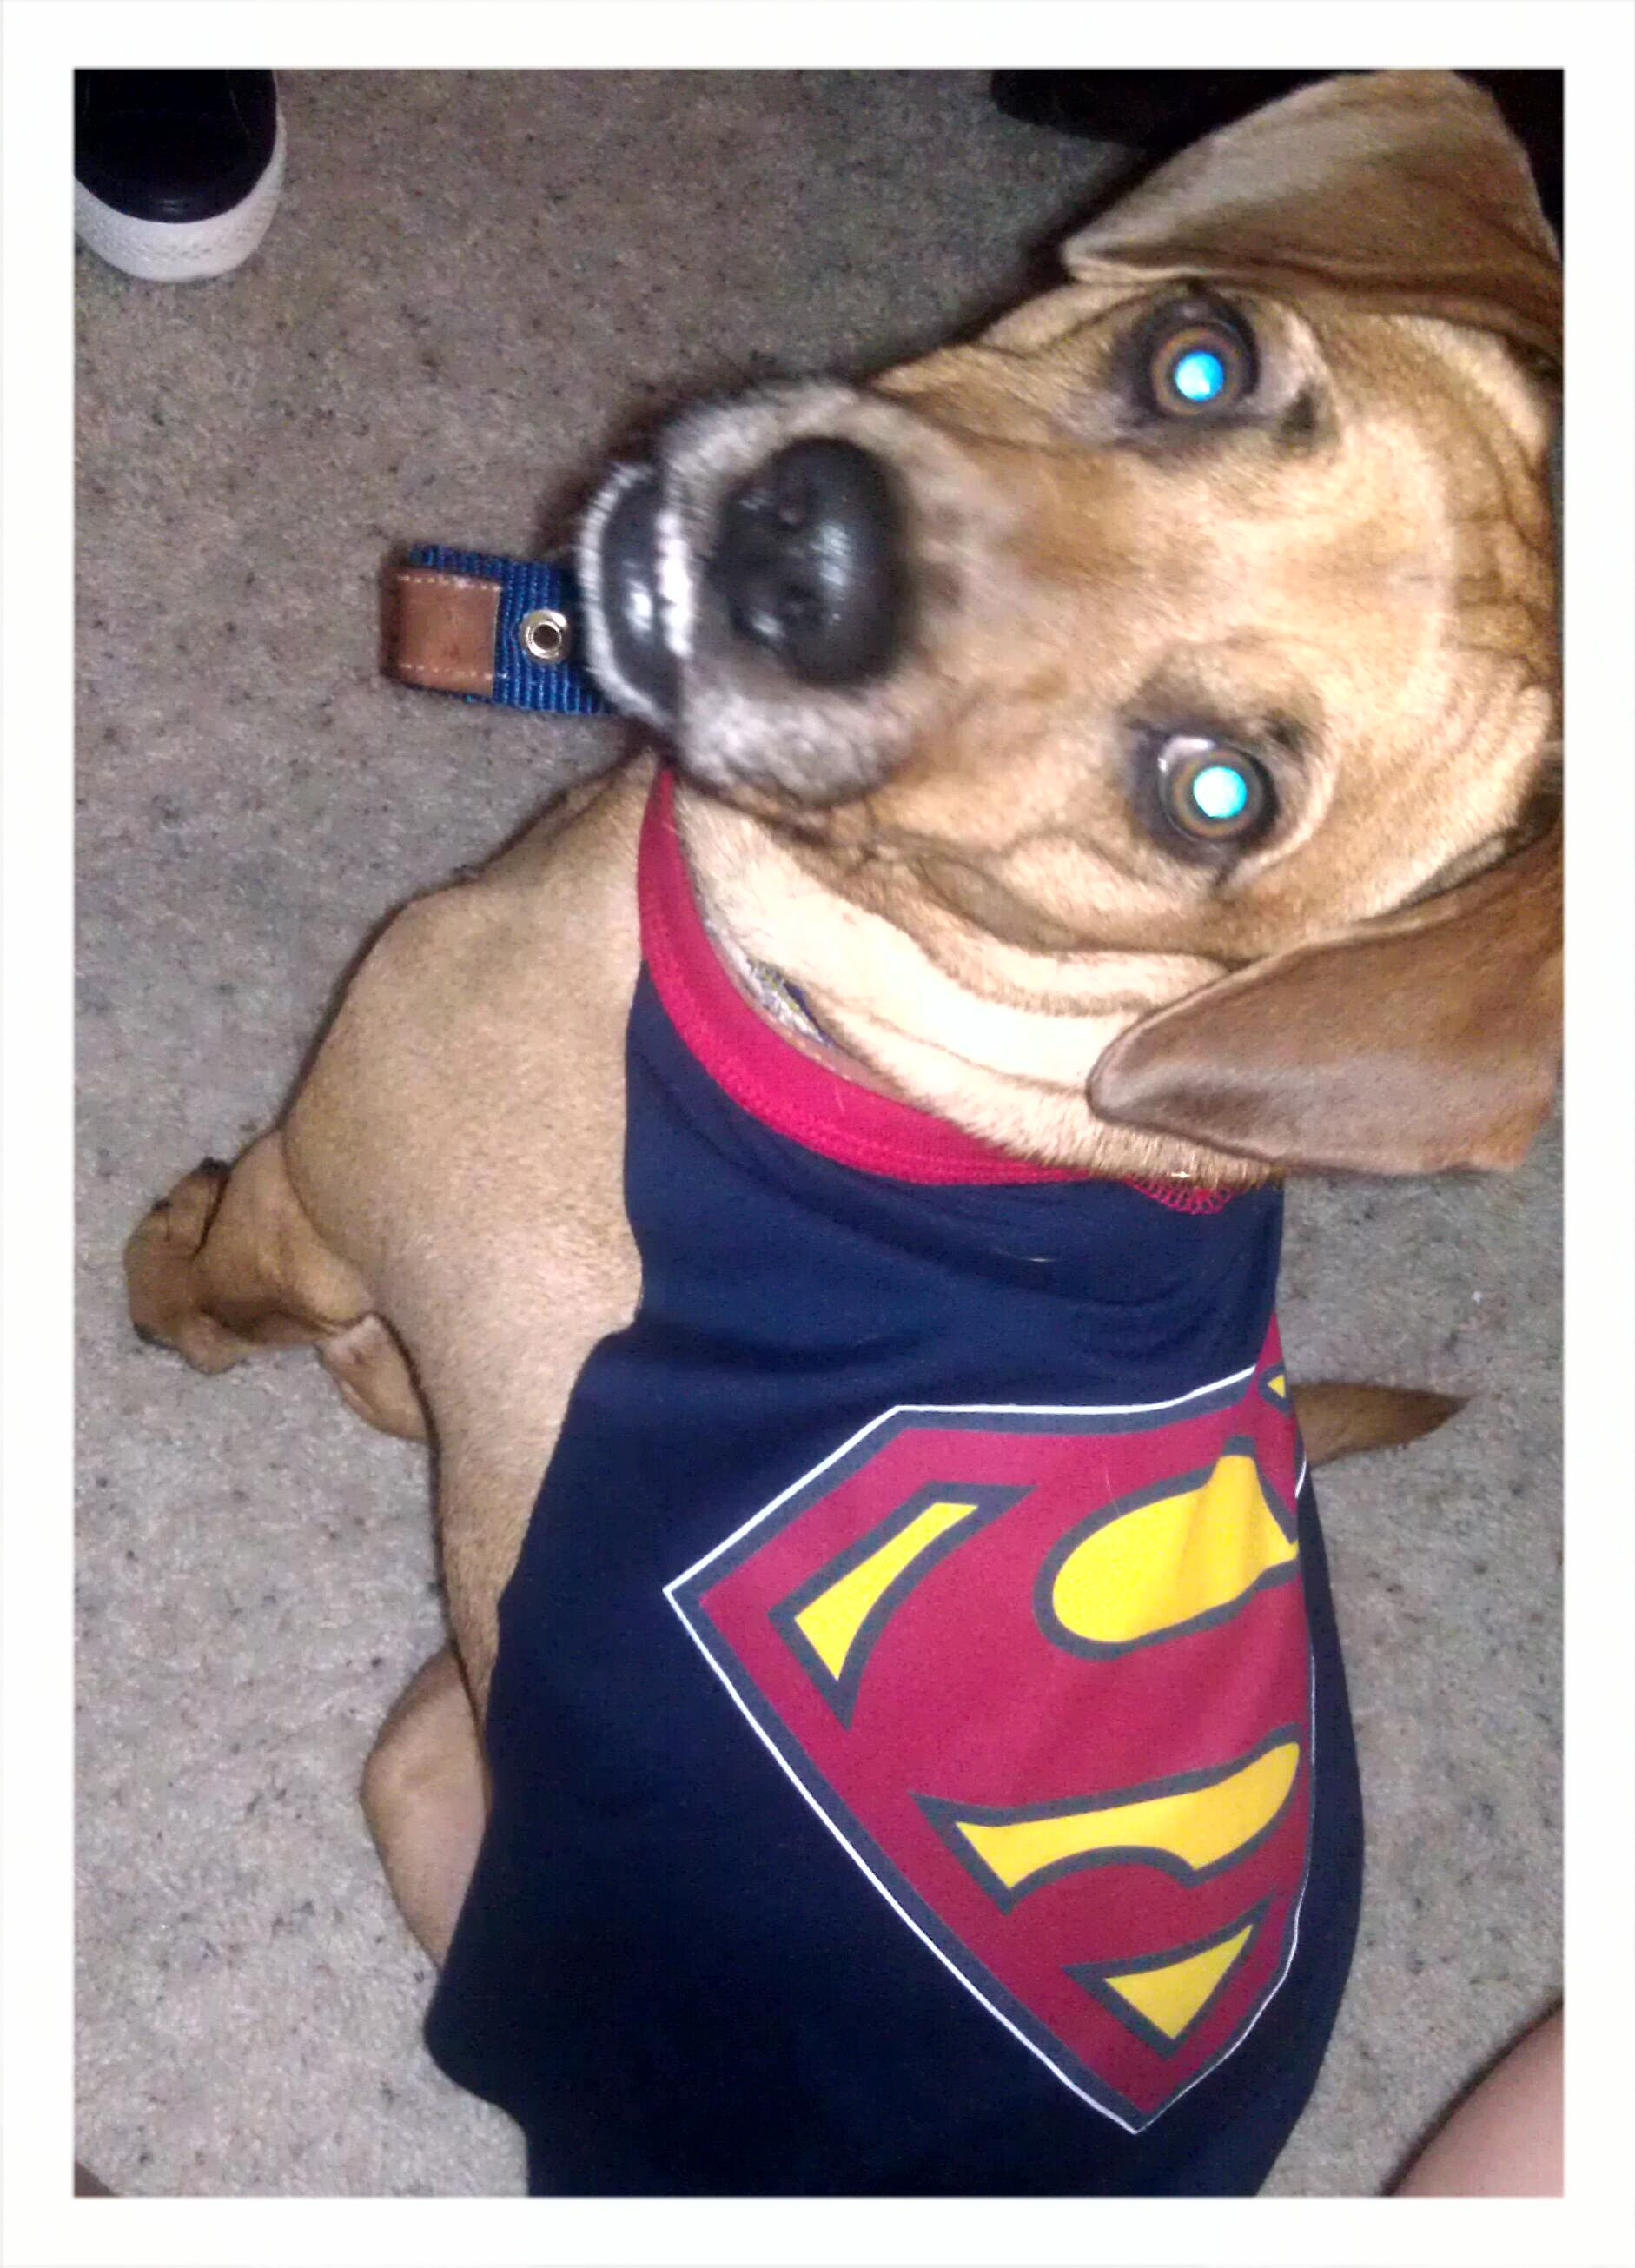 Made my dog a cape for his Petsmart graduation tomorrow. Cost: $5. Time: 10 minutes. I love my dog!